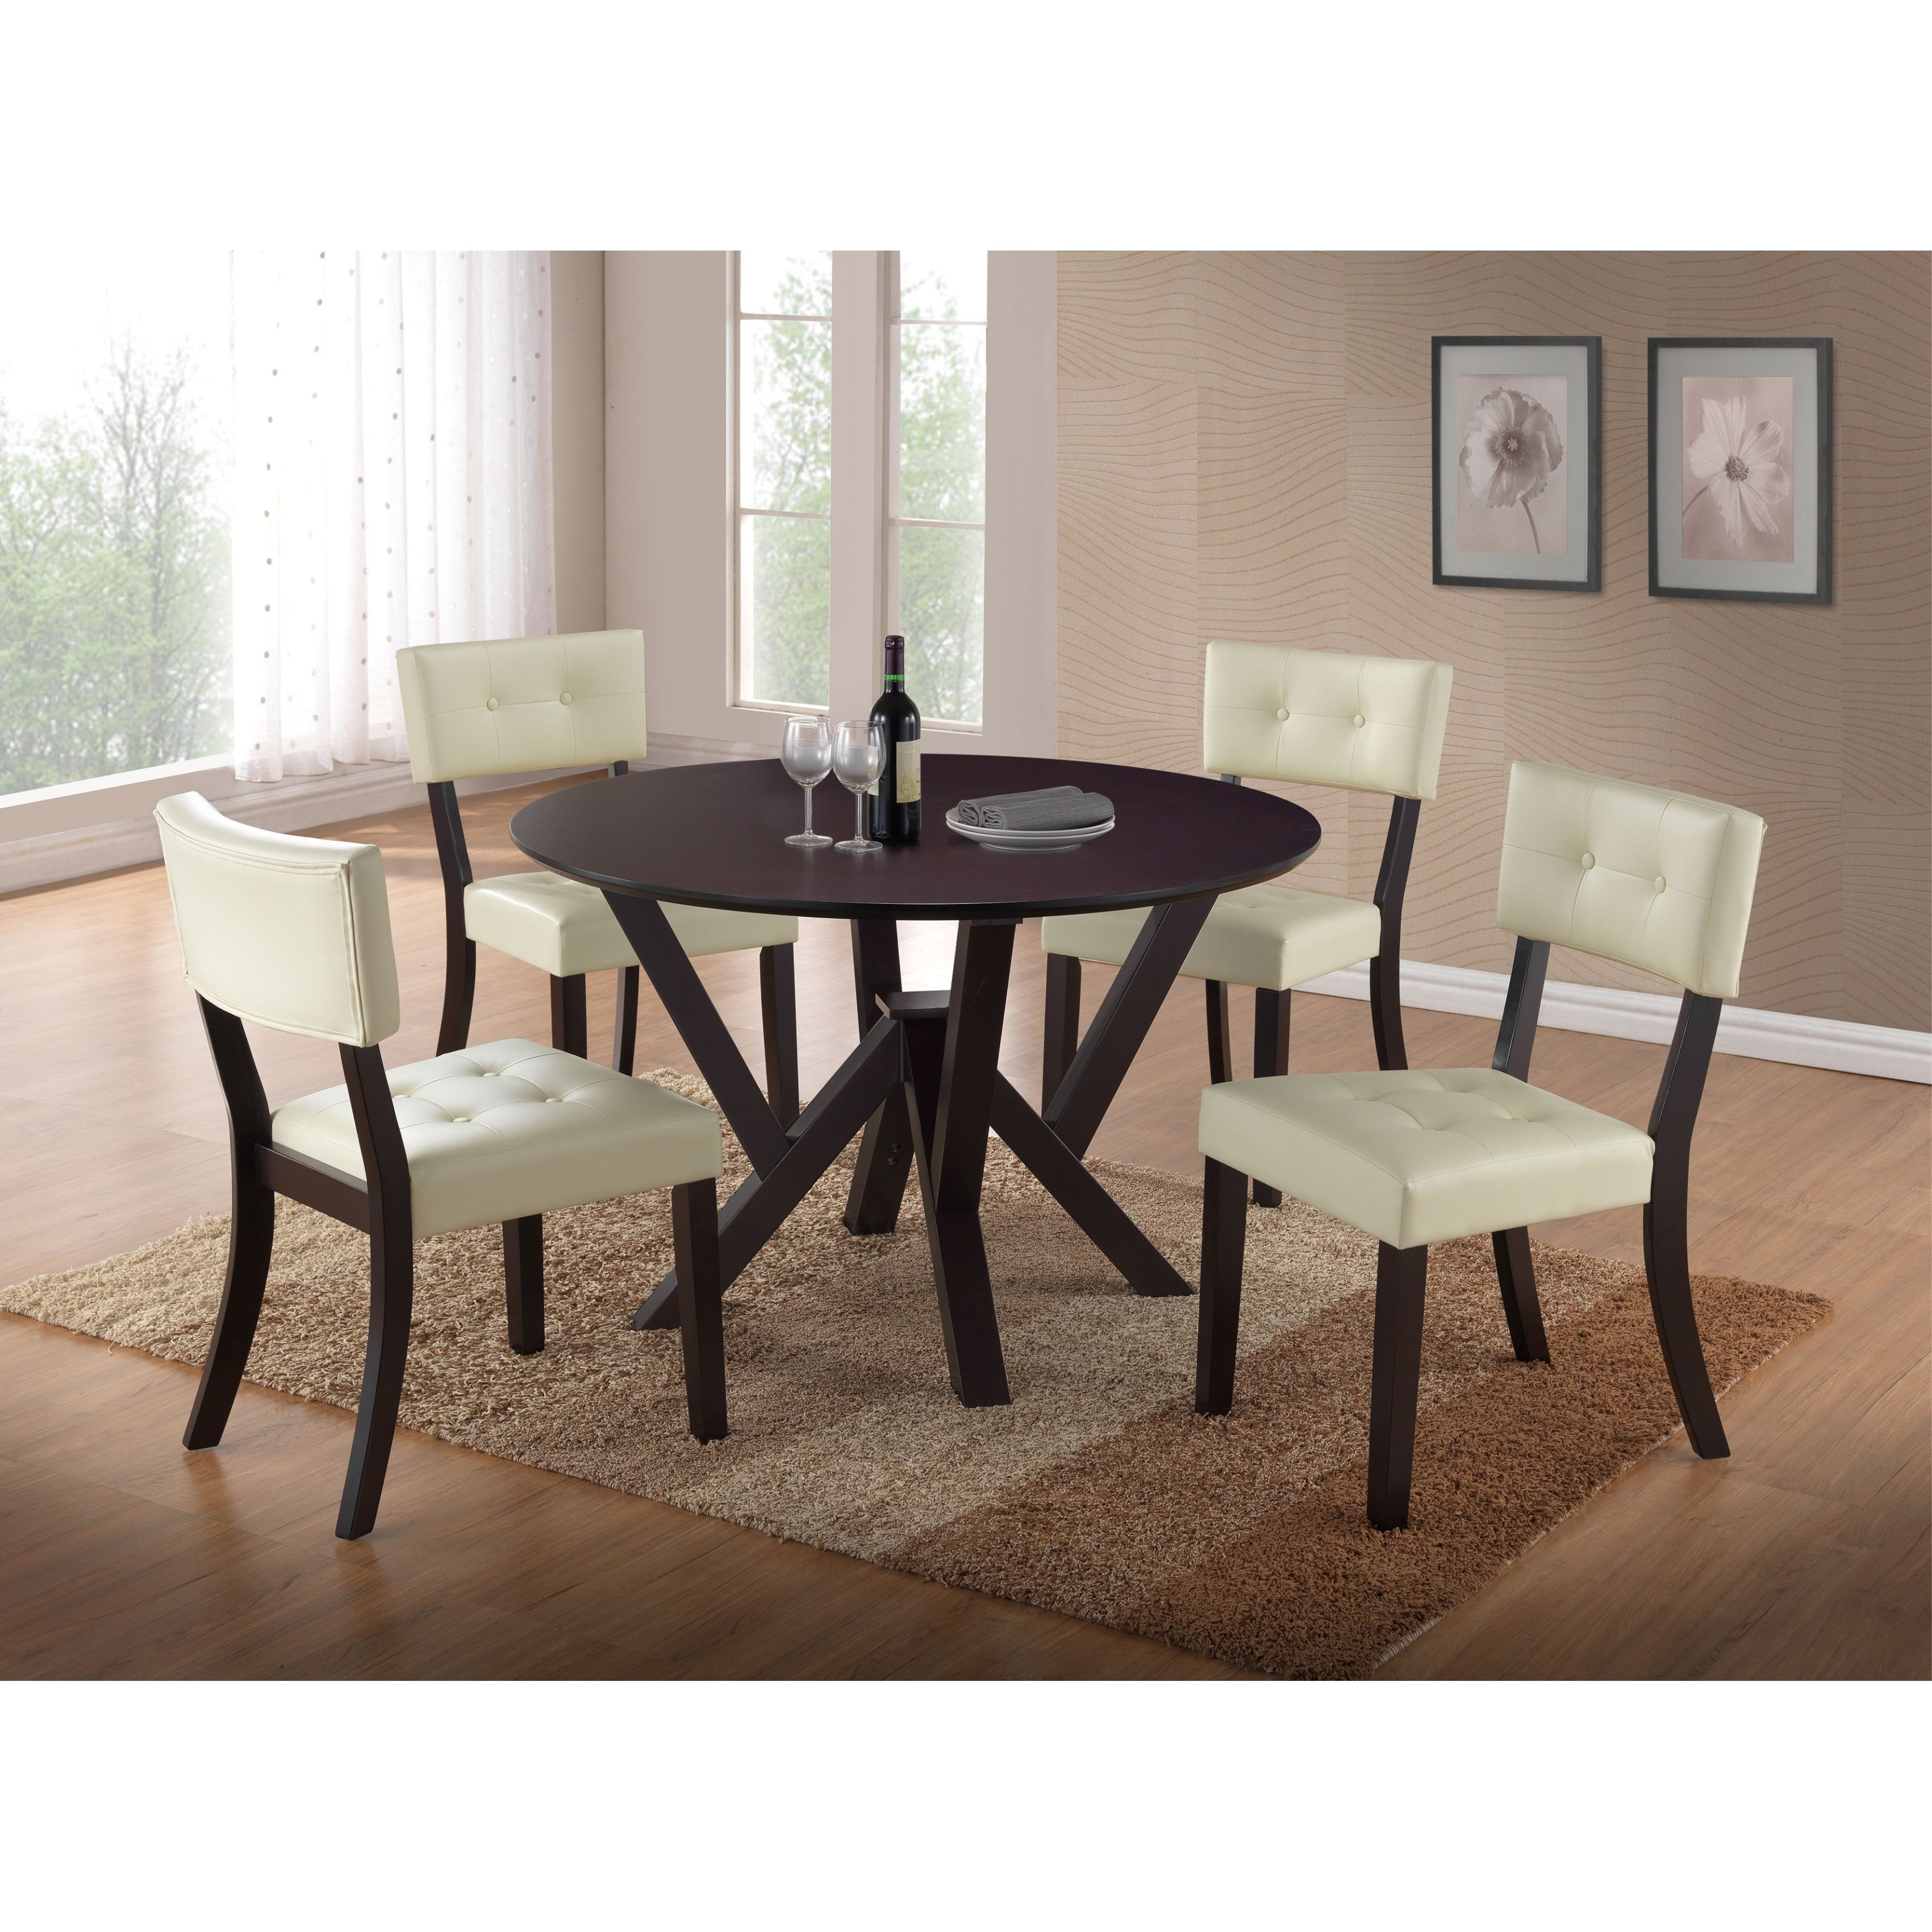 Usa Global Furniture On Tufted Dining Chair